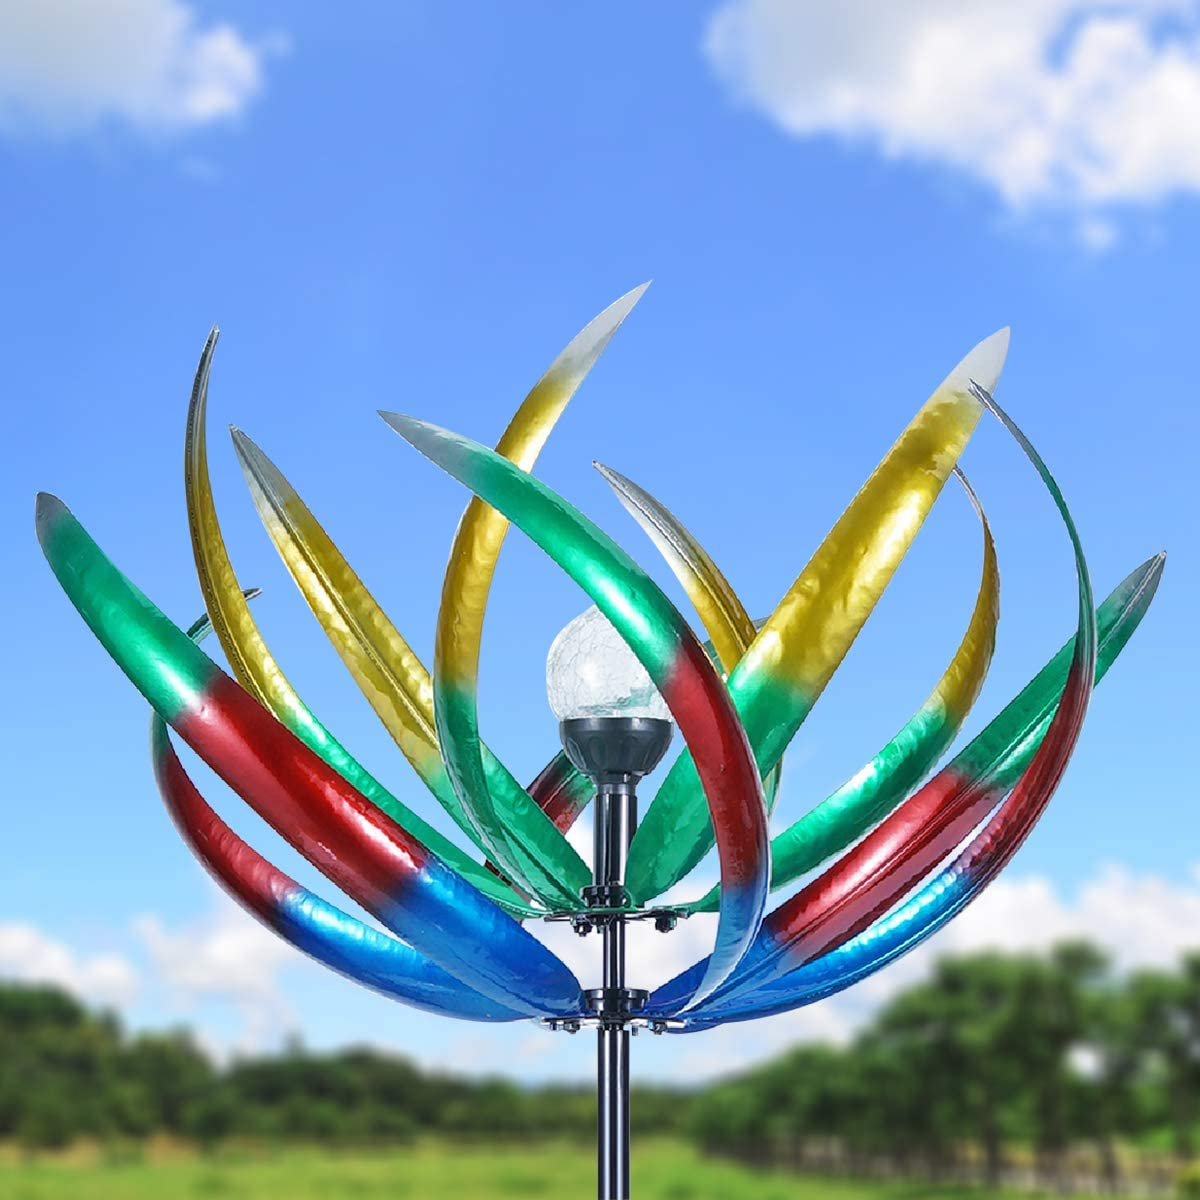 Solar Wind Spinner 3d Kinetic Wind Spinners Outdoor Metal Gardening Decorations With Multi Color Led Lighting By Solar Powered Glass Ball With Lawn Ornament Wind Mills Patio Lawn Garden Hazelsdiner Garden Sculptures